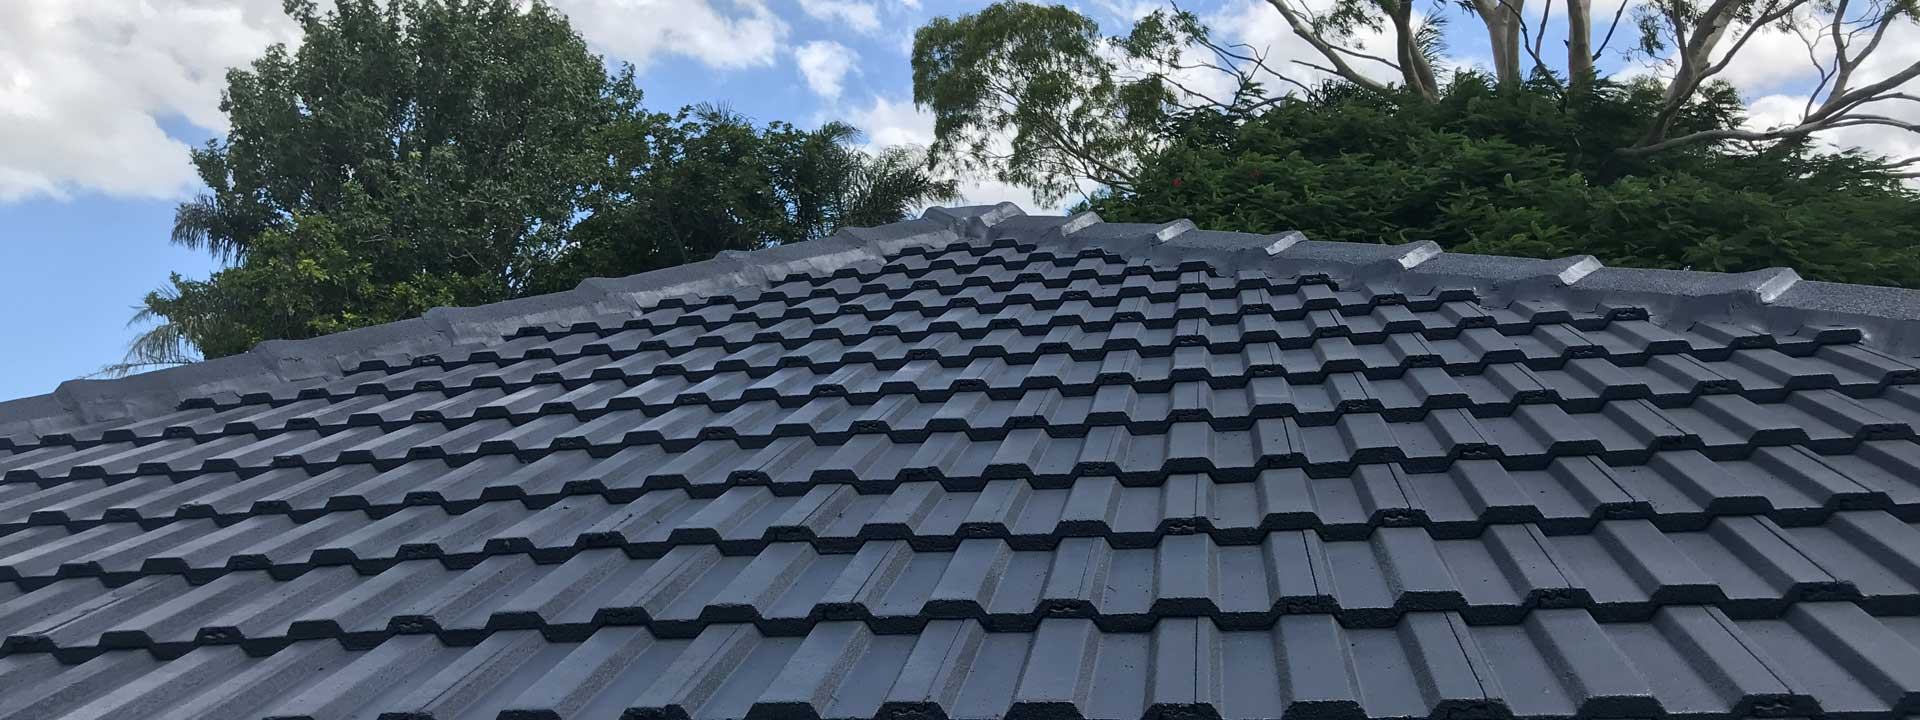 Tile Roof Restoration Brisbane